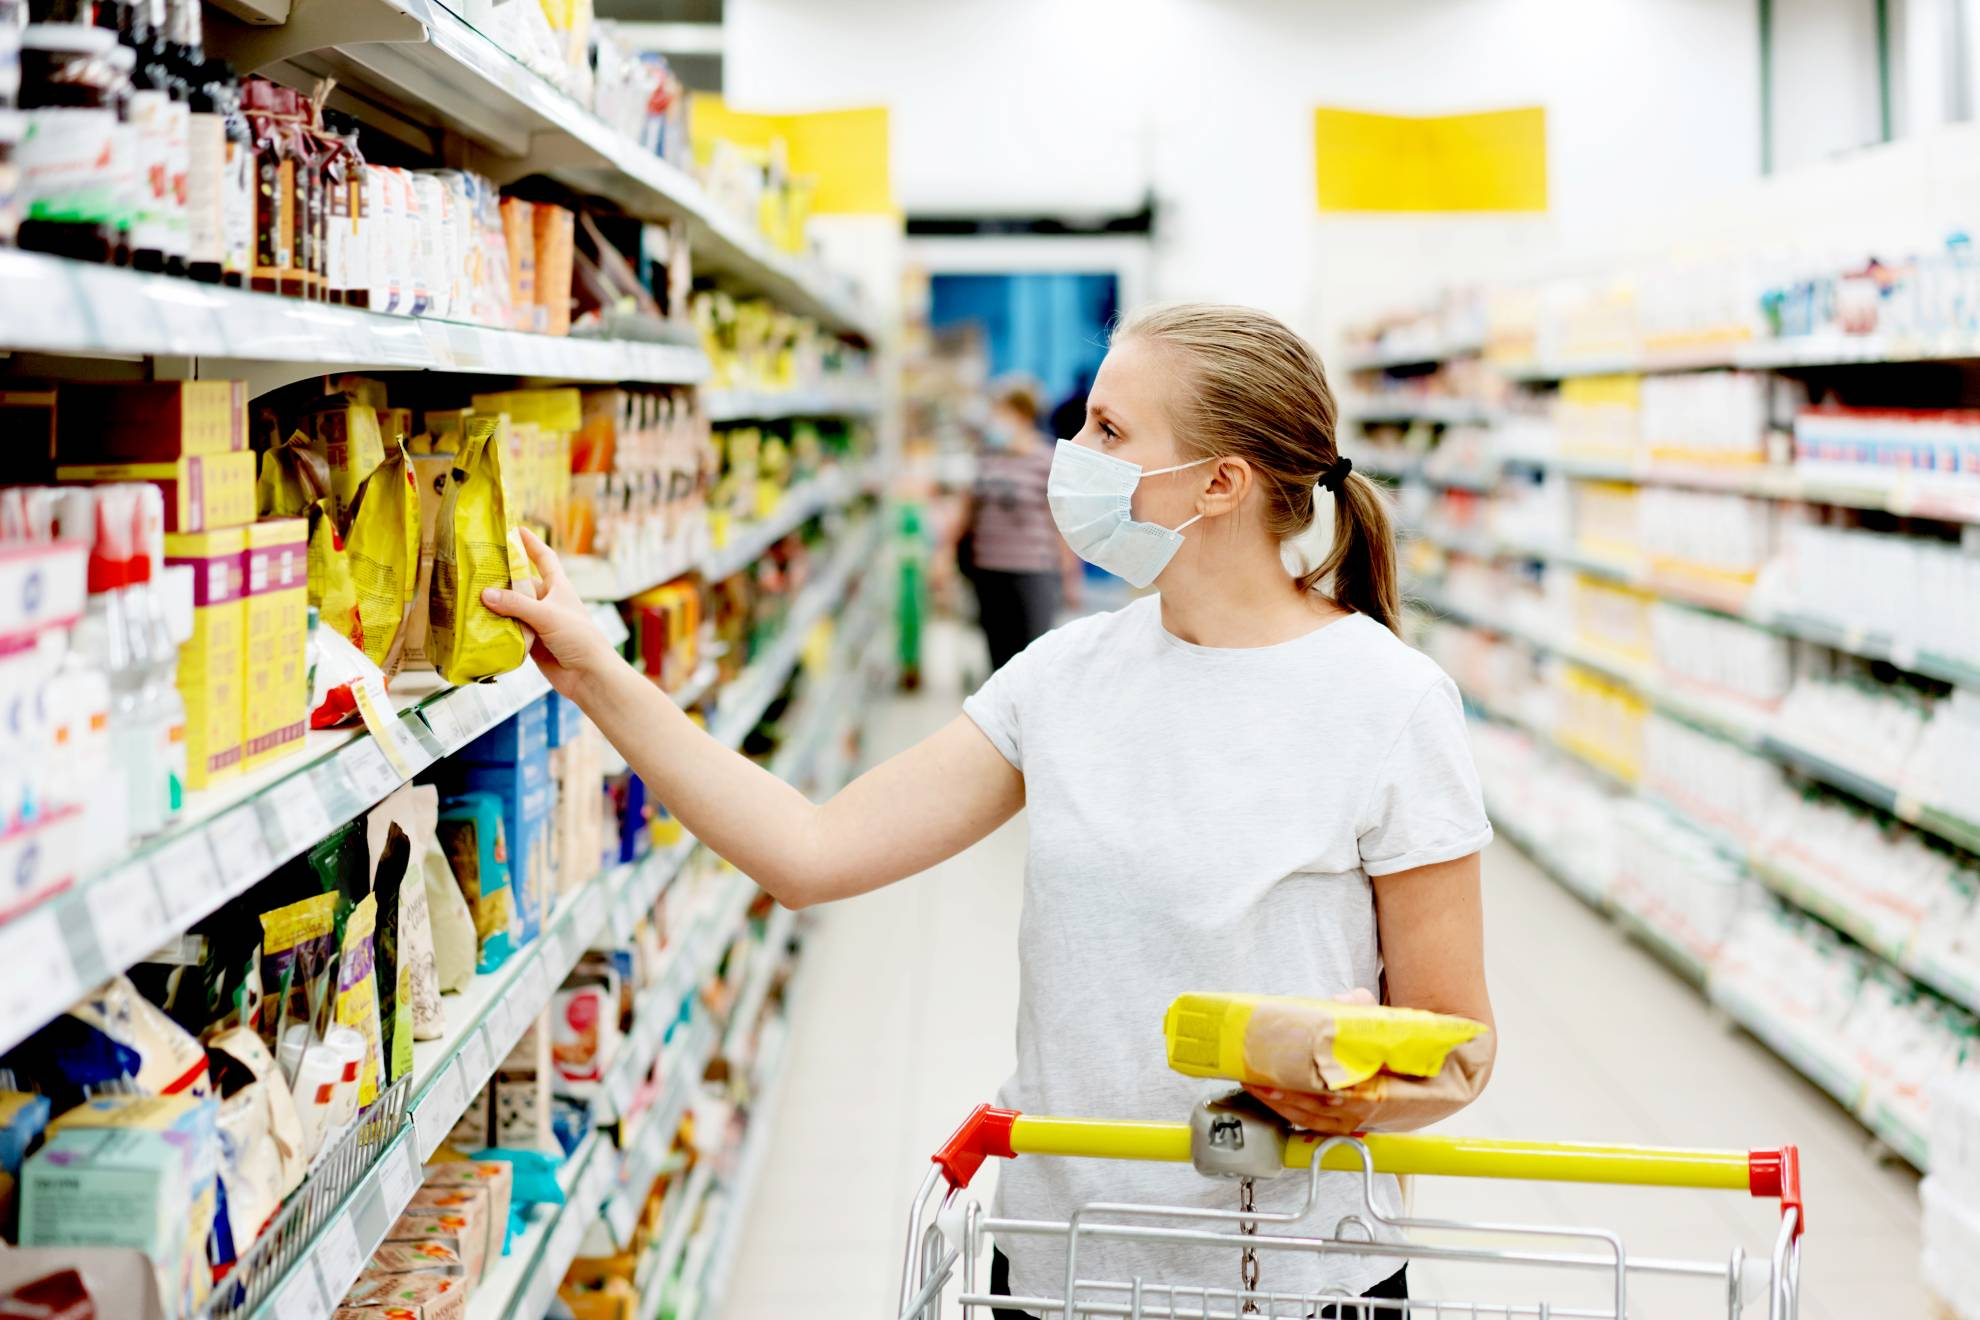 countervailing-measures-in-pandemic-grocery-shoppi-XH4HZXE (1)